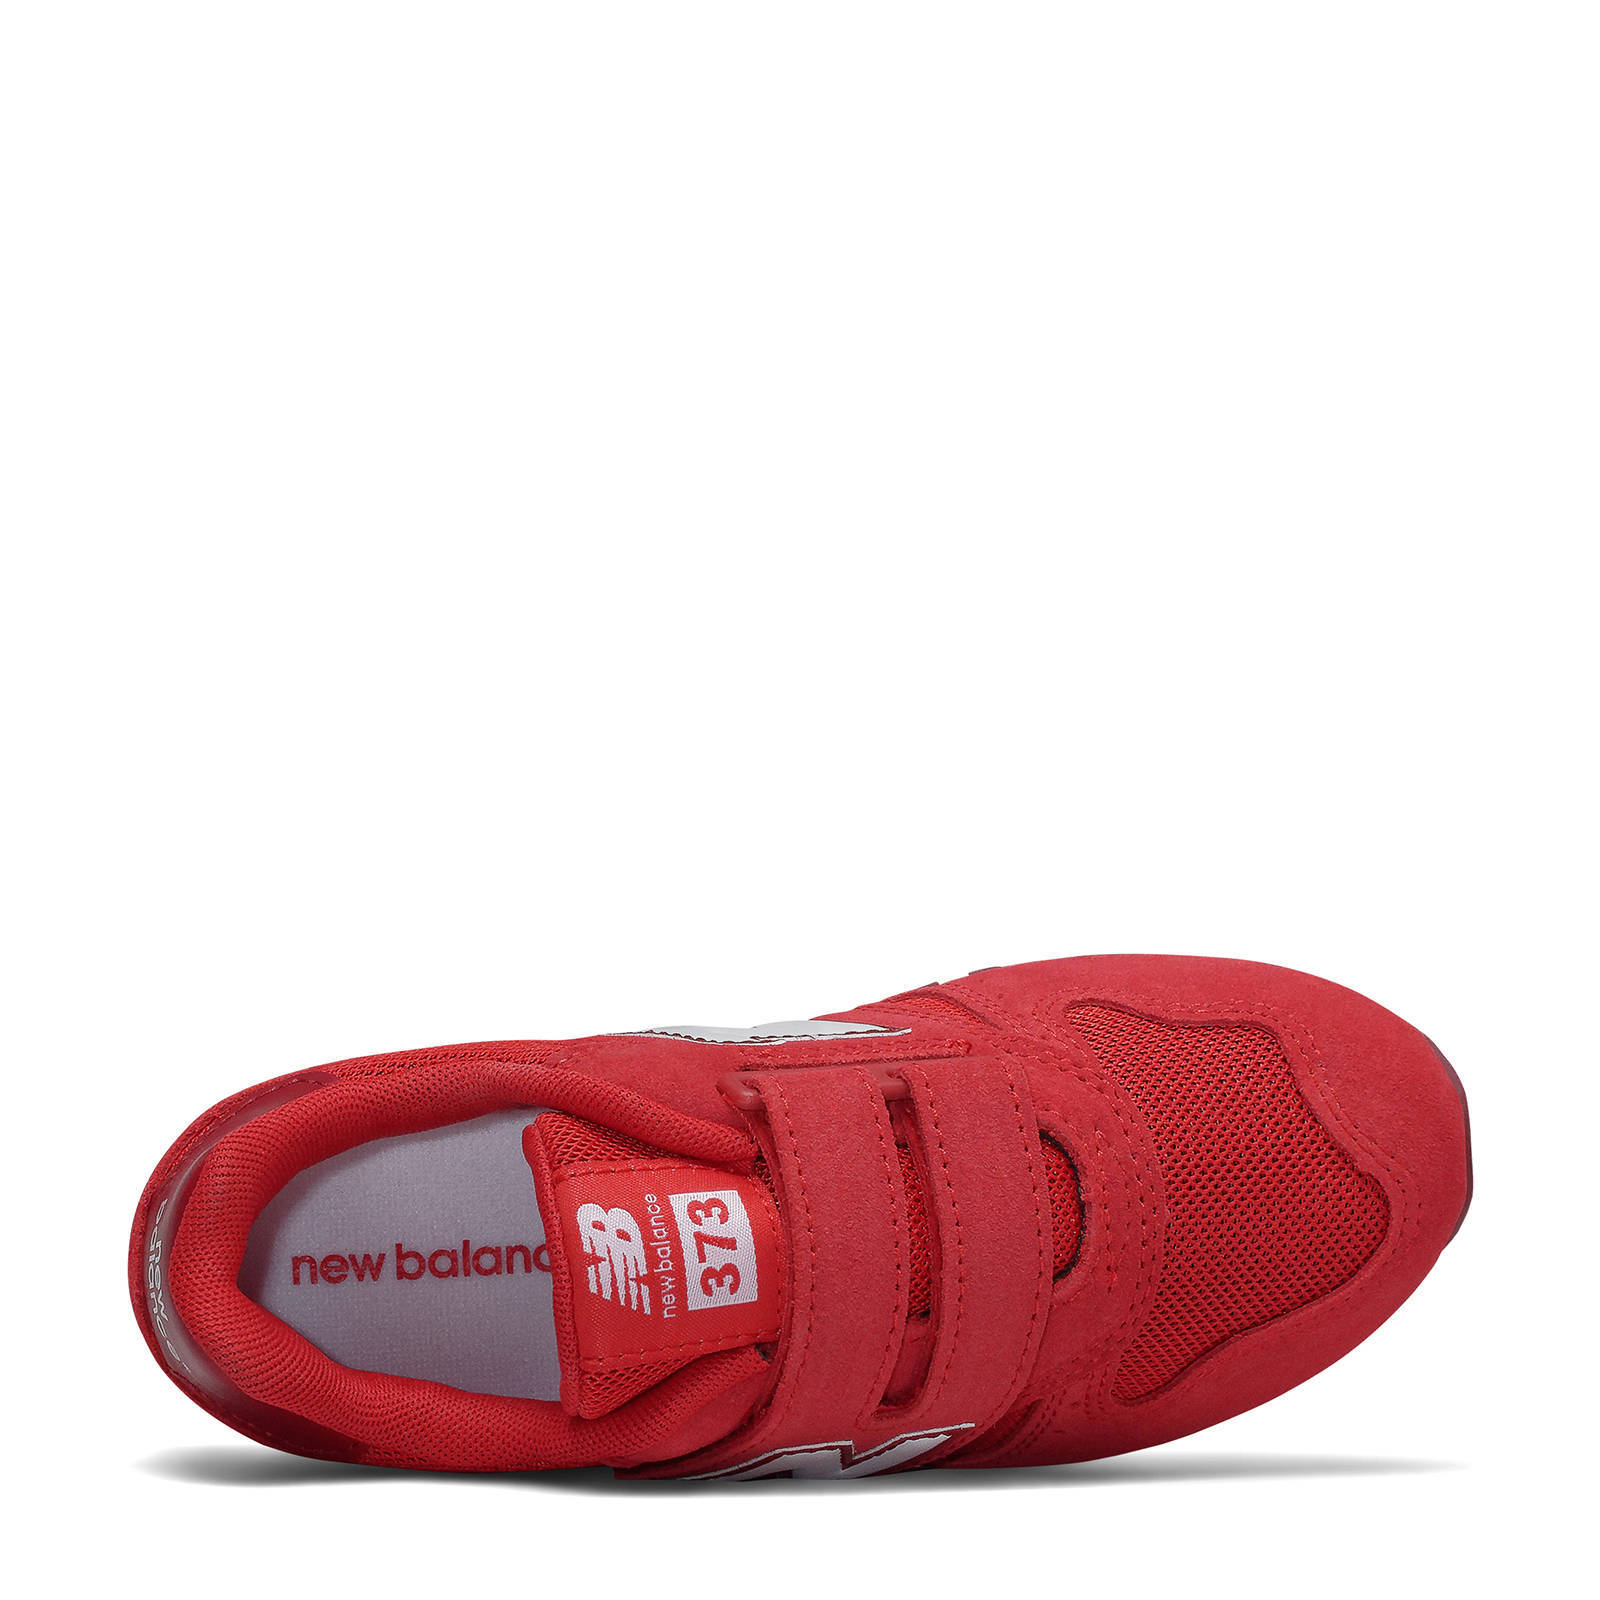 New Balance 373 sneakers rood/wit | wehkamp